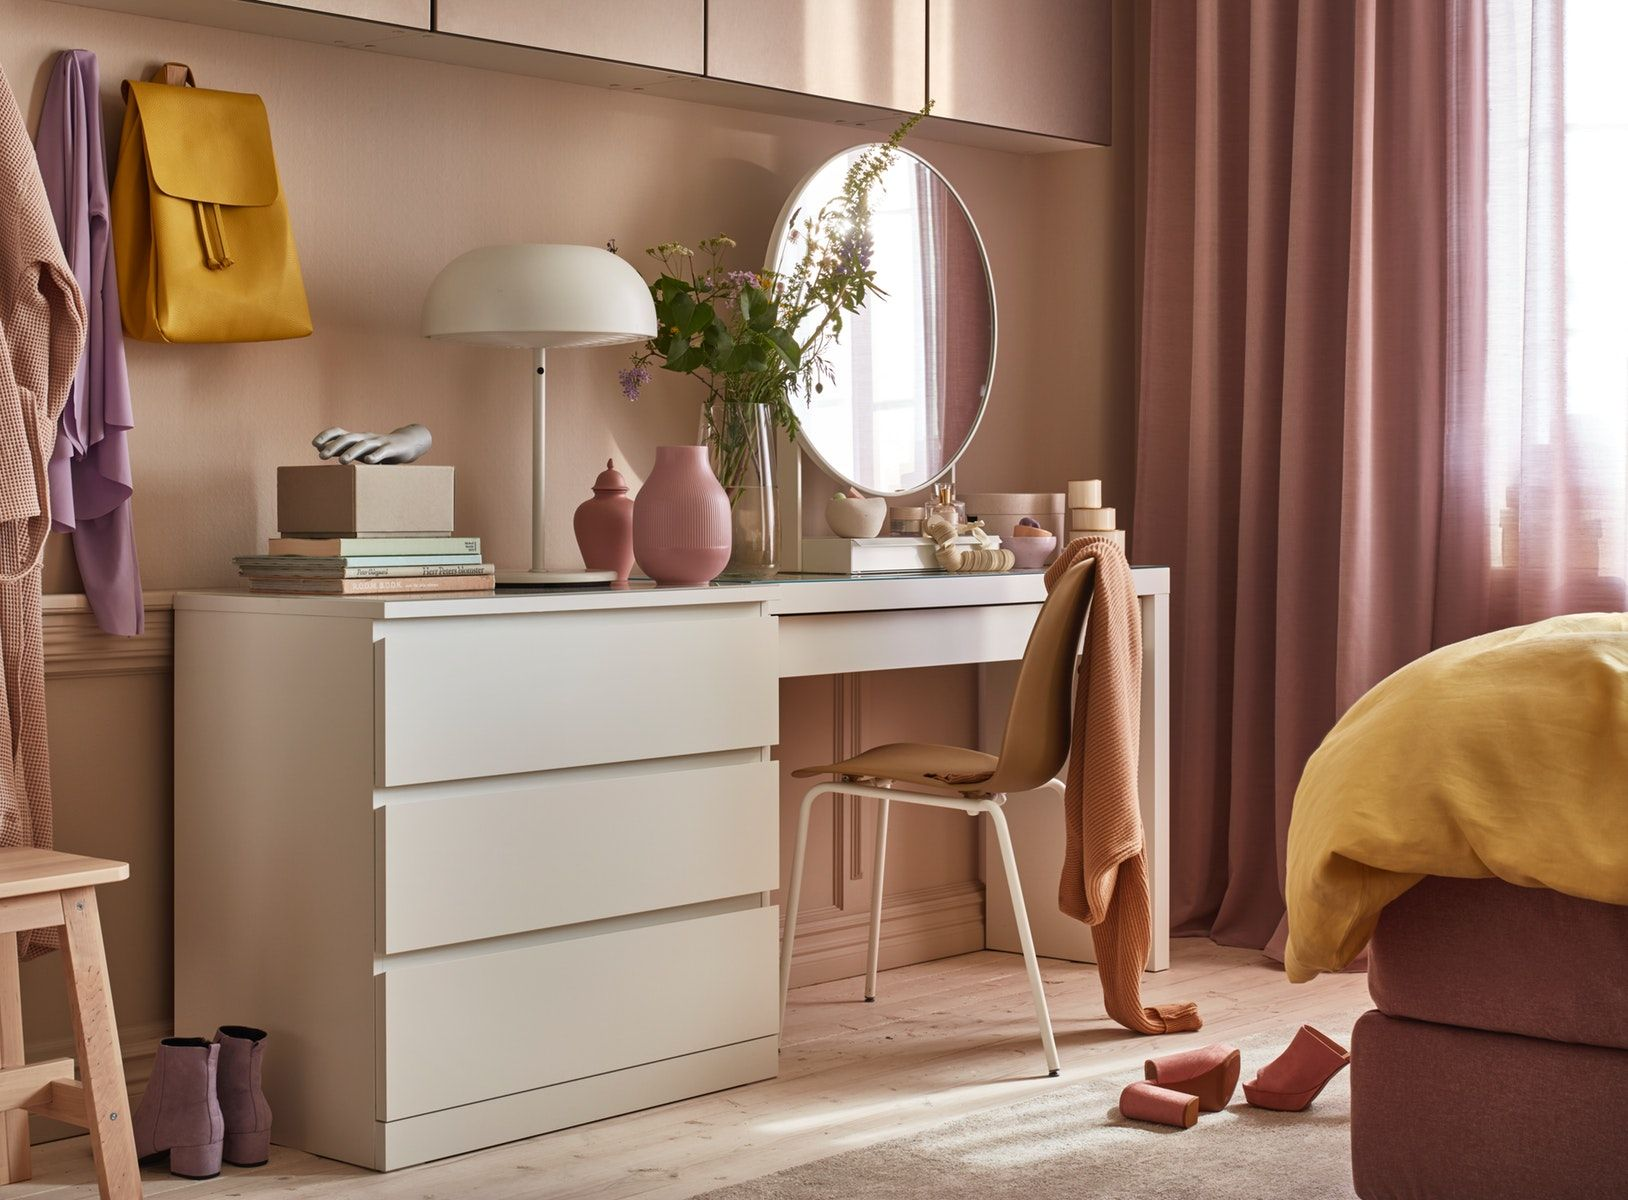 Because the MALM chest of drawers and MALM dressing